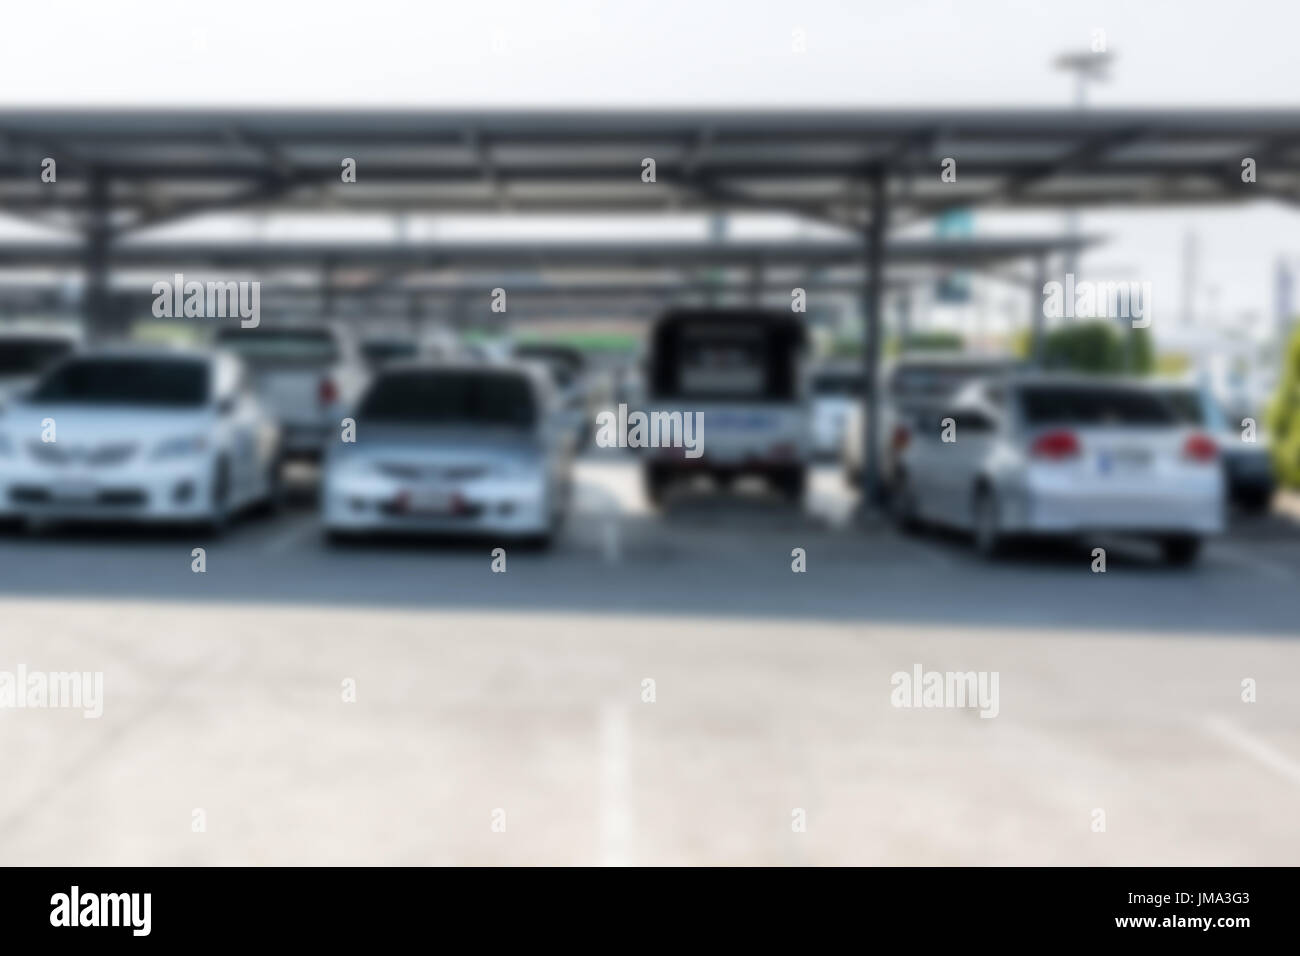 blur image of car park in outdoor parking with copy space for background usage - Stock Image